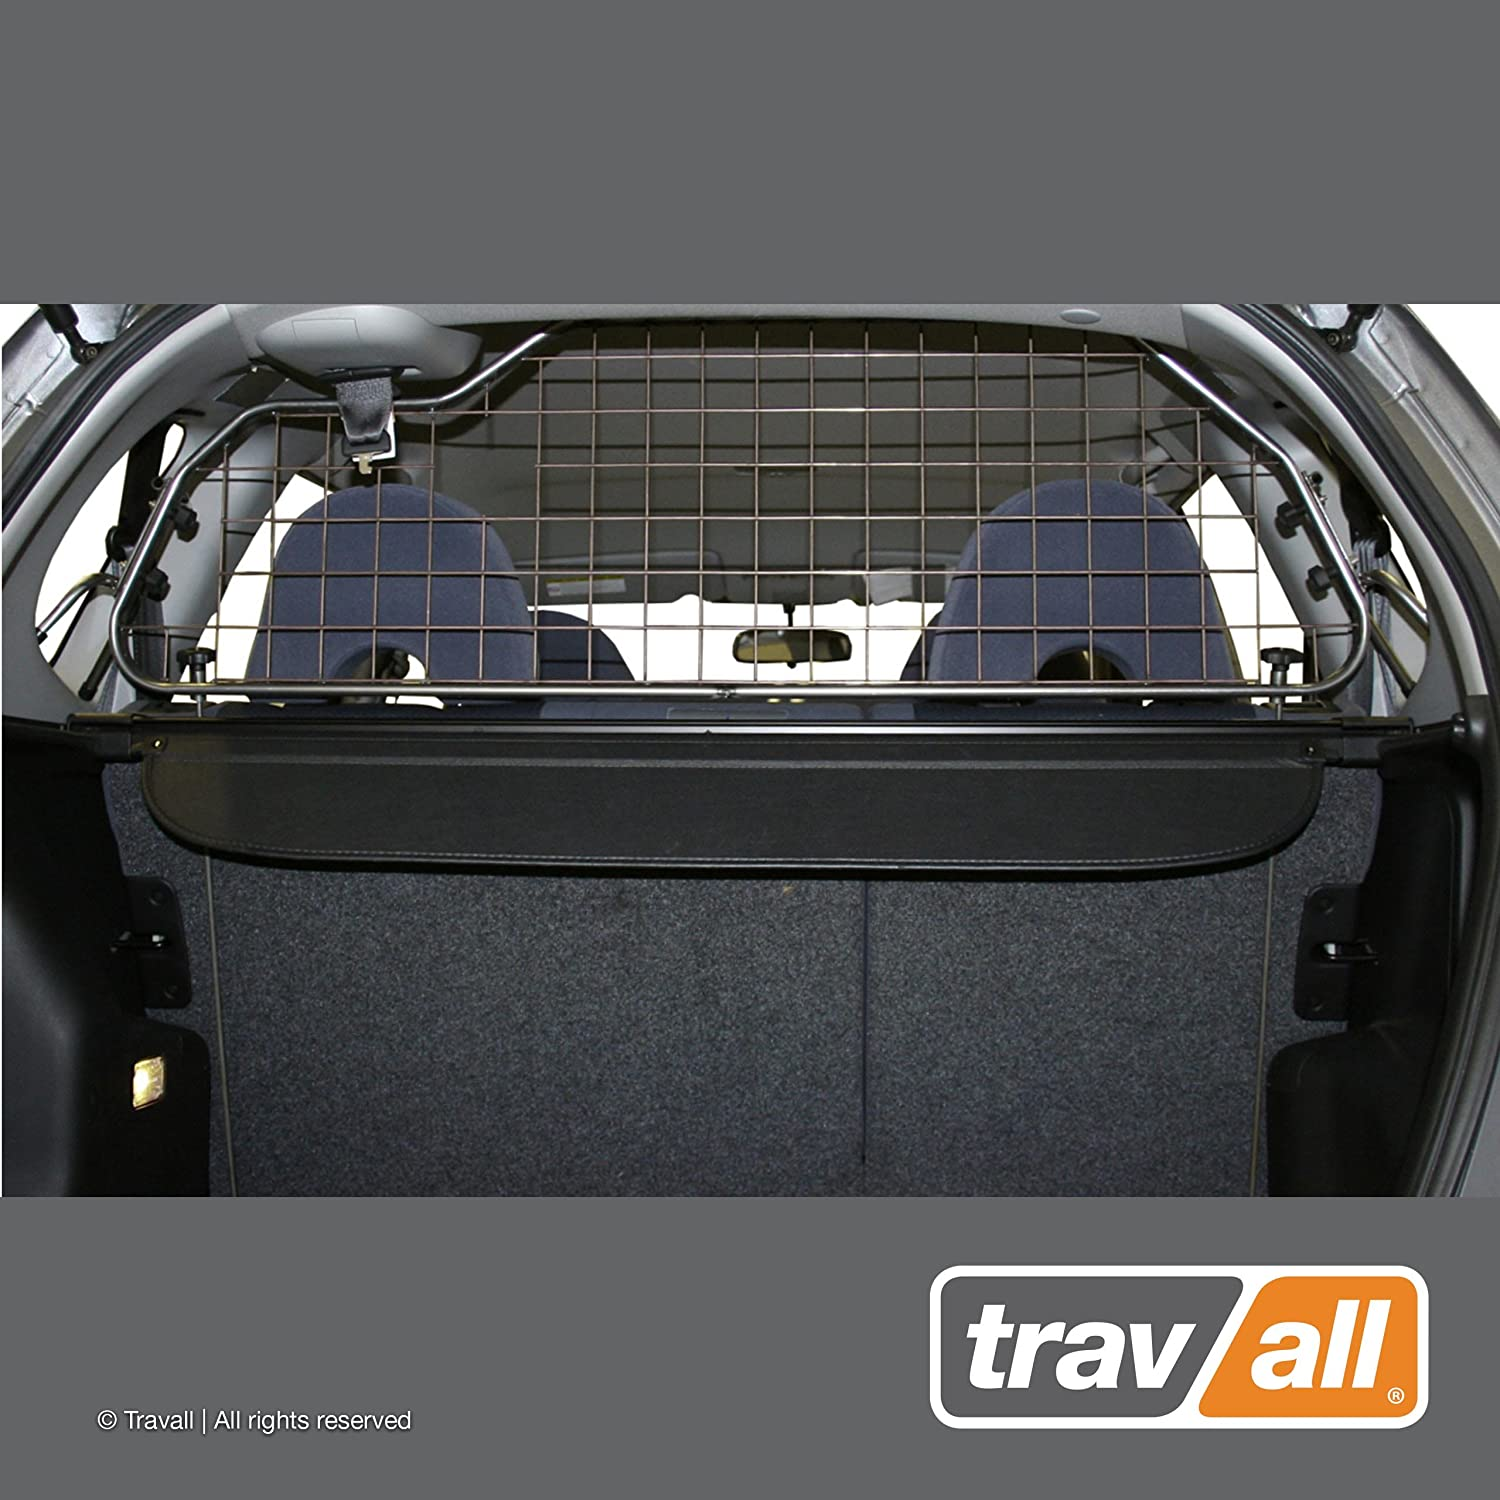 Travall Guard Compatible with Honda Fit 2001-2008 TDG1171 – Rattle-Free Steel Pet Barrier